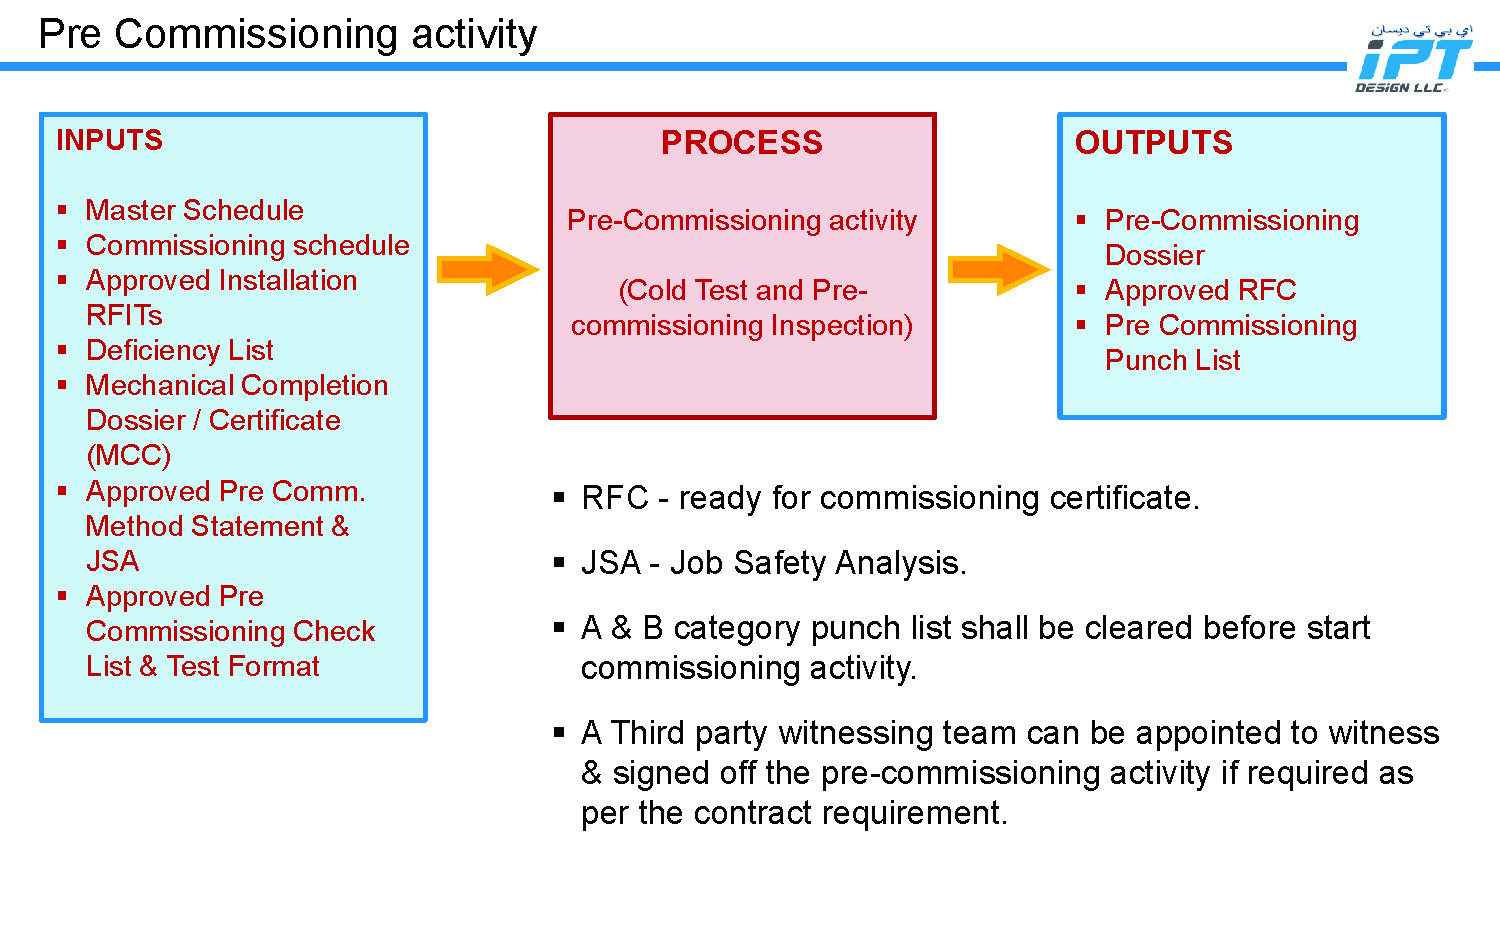 IPT Design LLC - Commissioning Management Process_Page_08.jpg